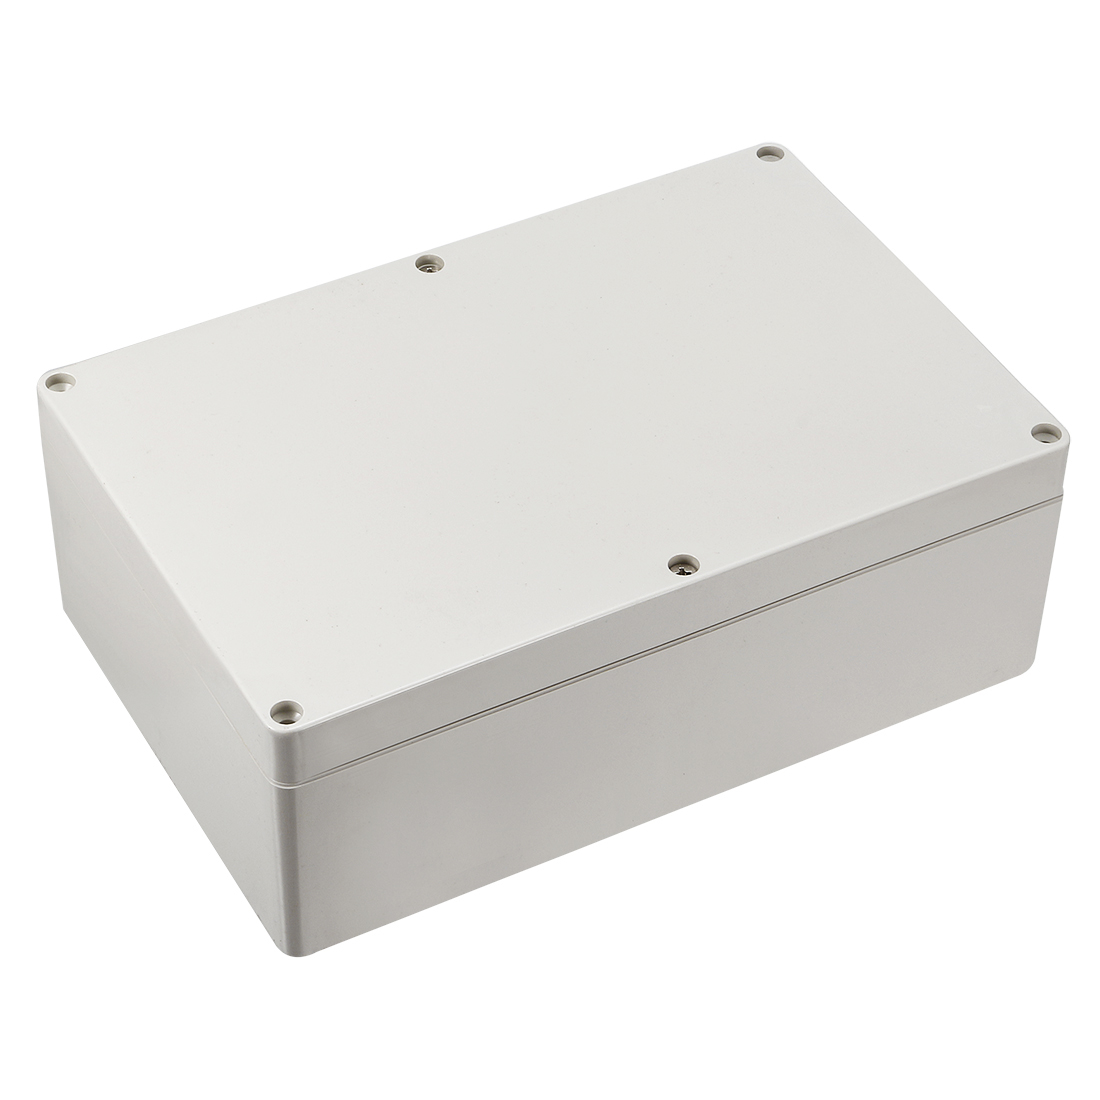 "9.06"" x 5.91"" x 3.31""(230mmx150mmx84mm) ABS Junction Box Universal Project Enclosure"